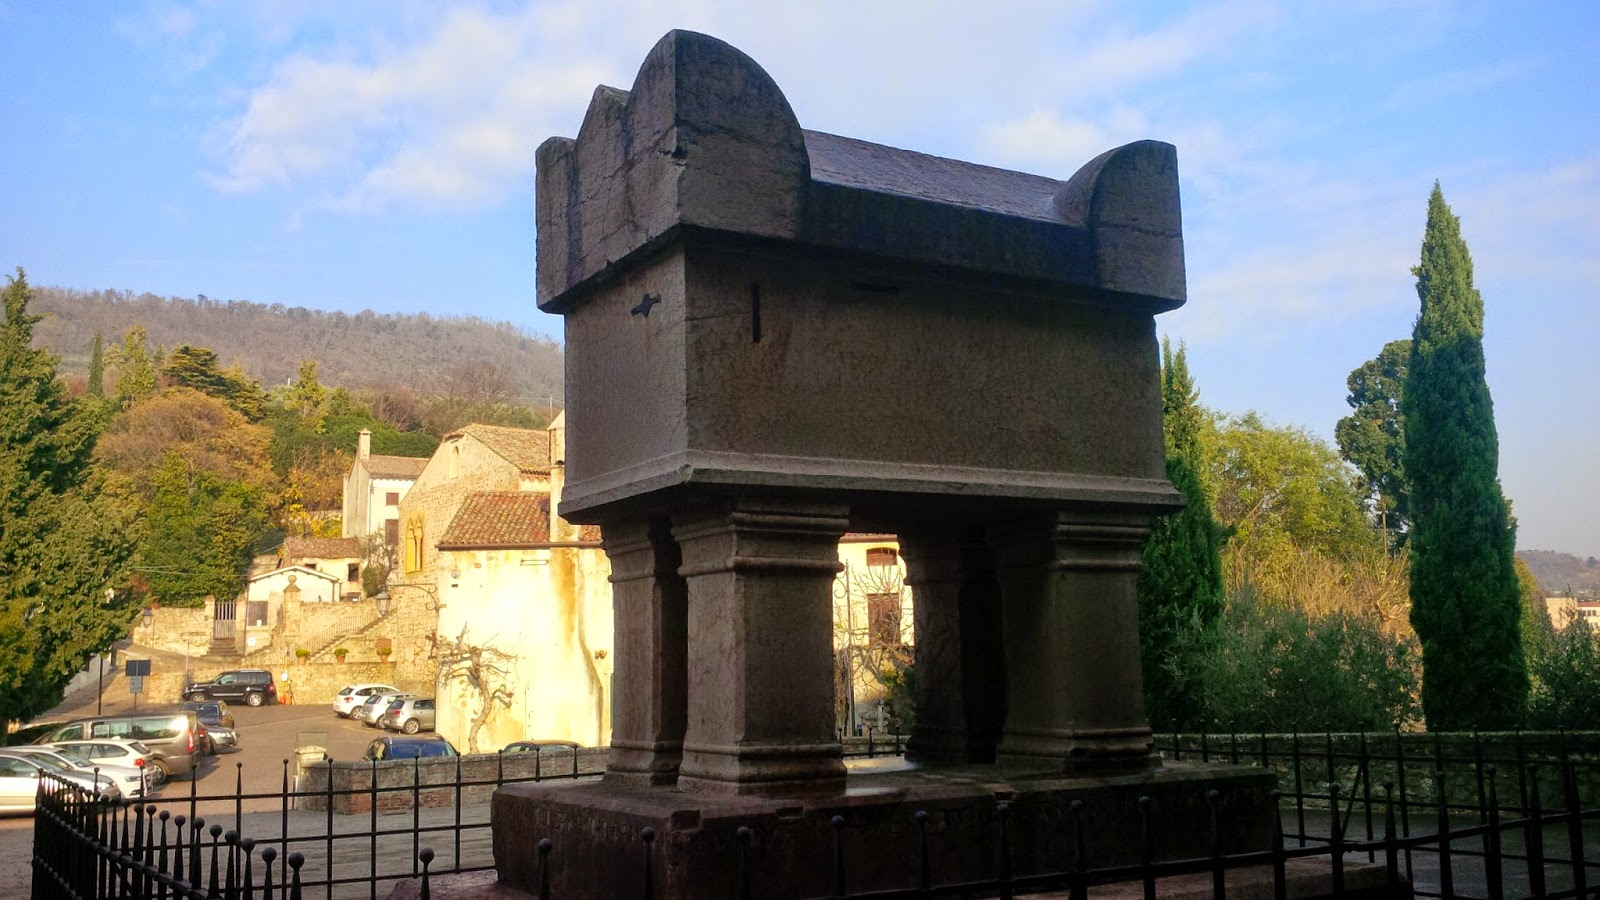 The tomb of Francesco Petrarch in the village of Arqua Petrarca